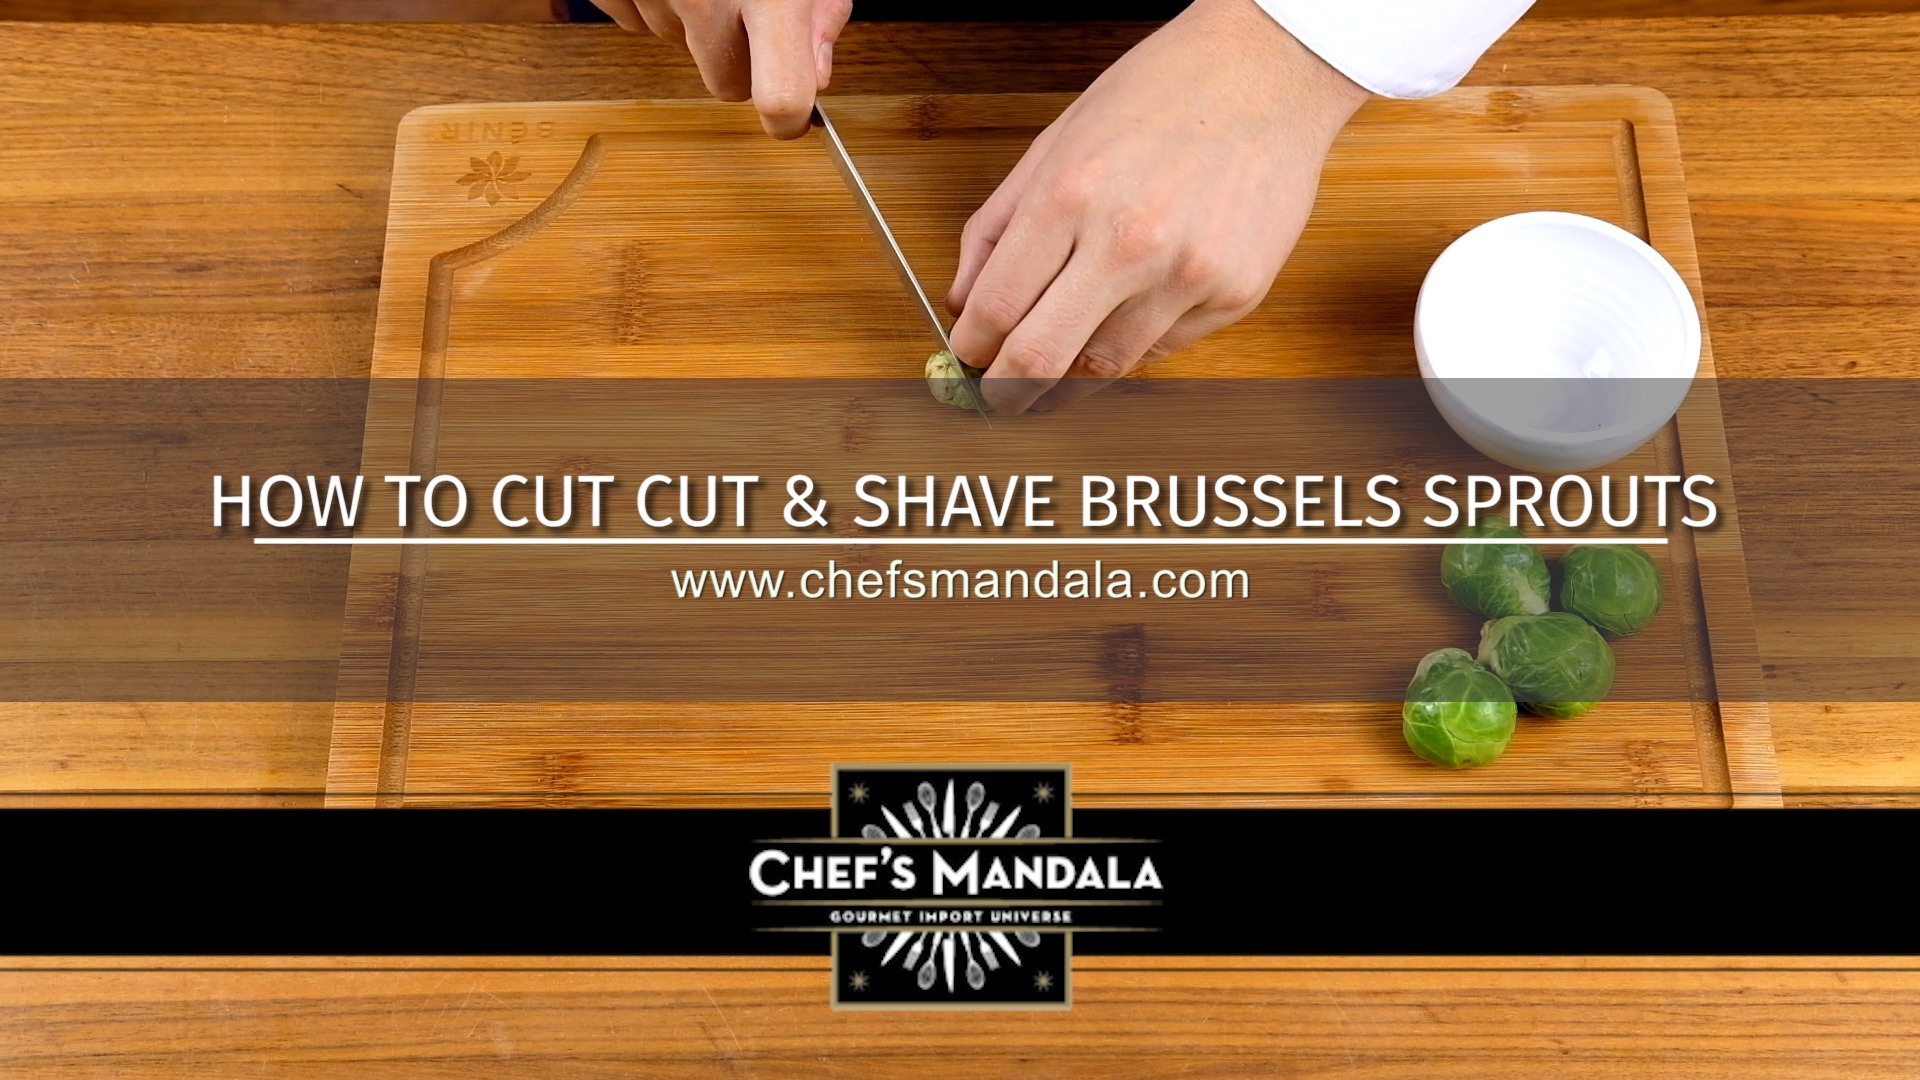 HOW TO CUT & SHAVE BRUSSELS SPROUTS